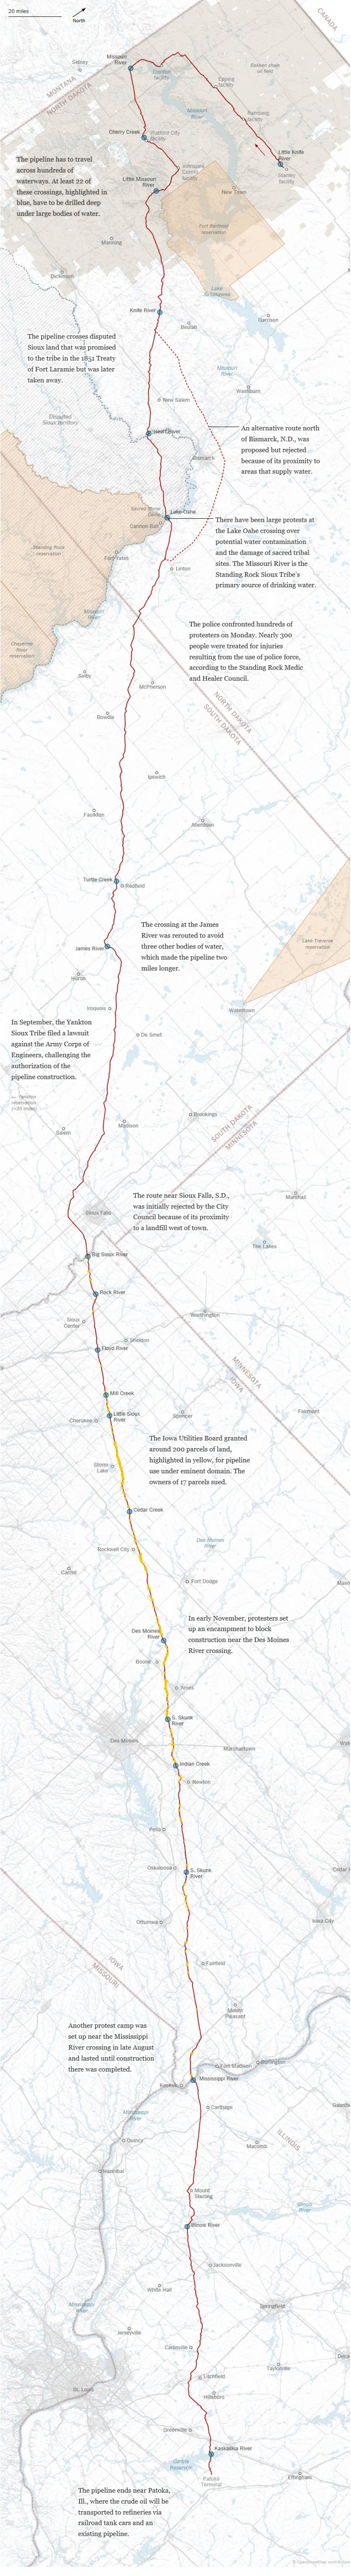 dakota-access-pipeline-long-vertical-map